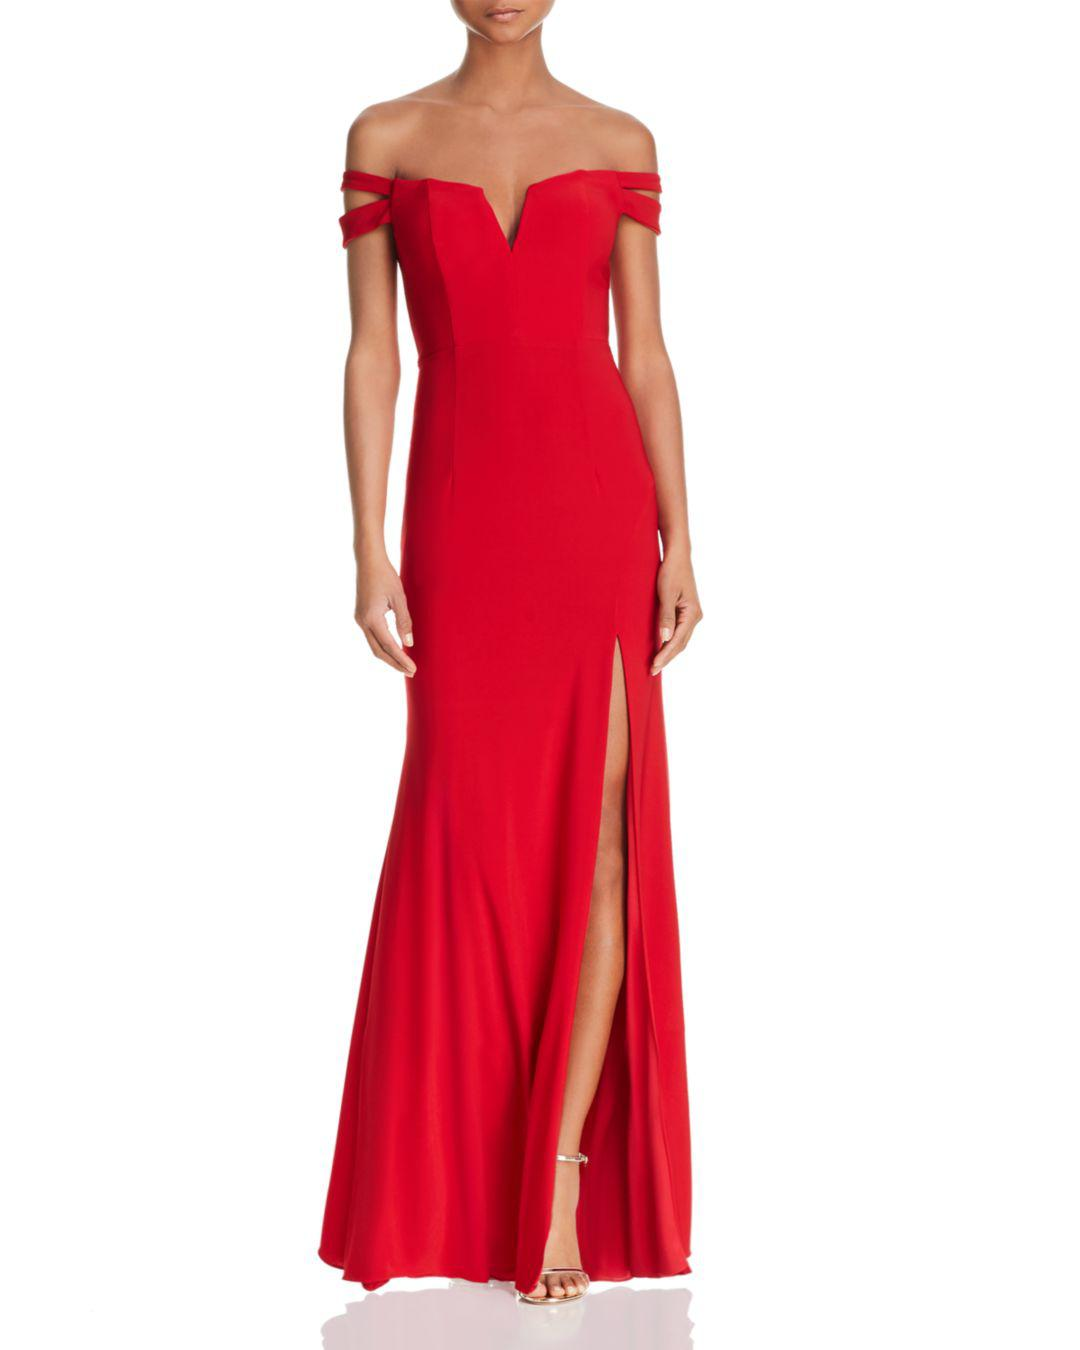 Lyst - Aqua Double-strap Off-the-shoulder Gown in Red